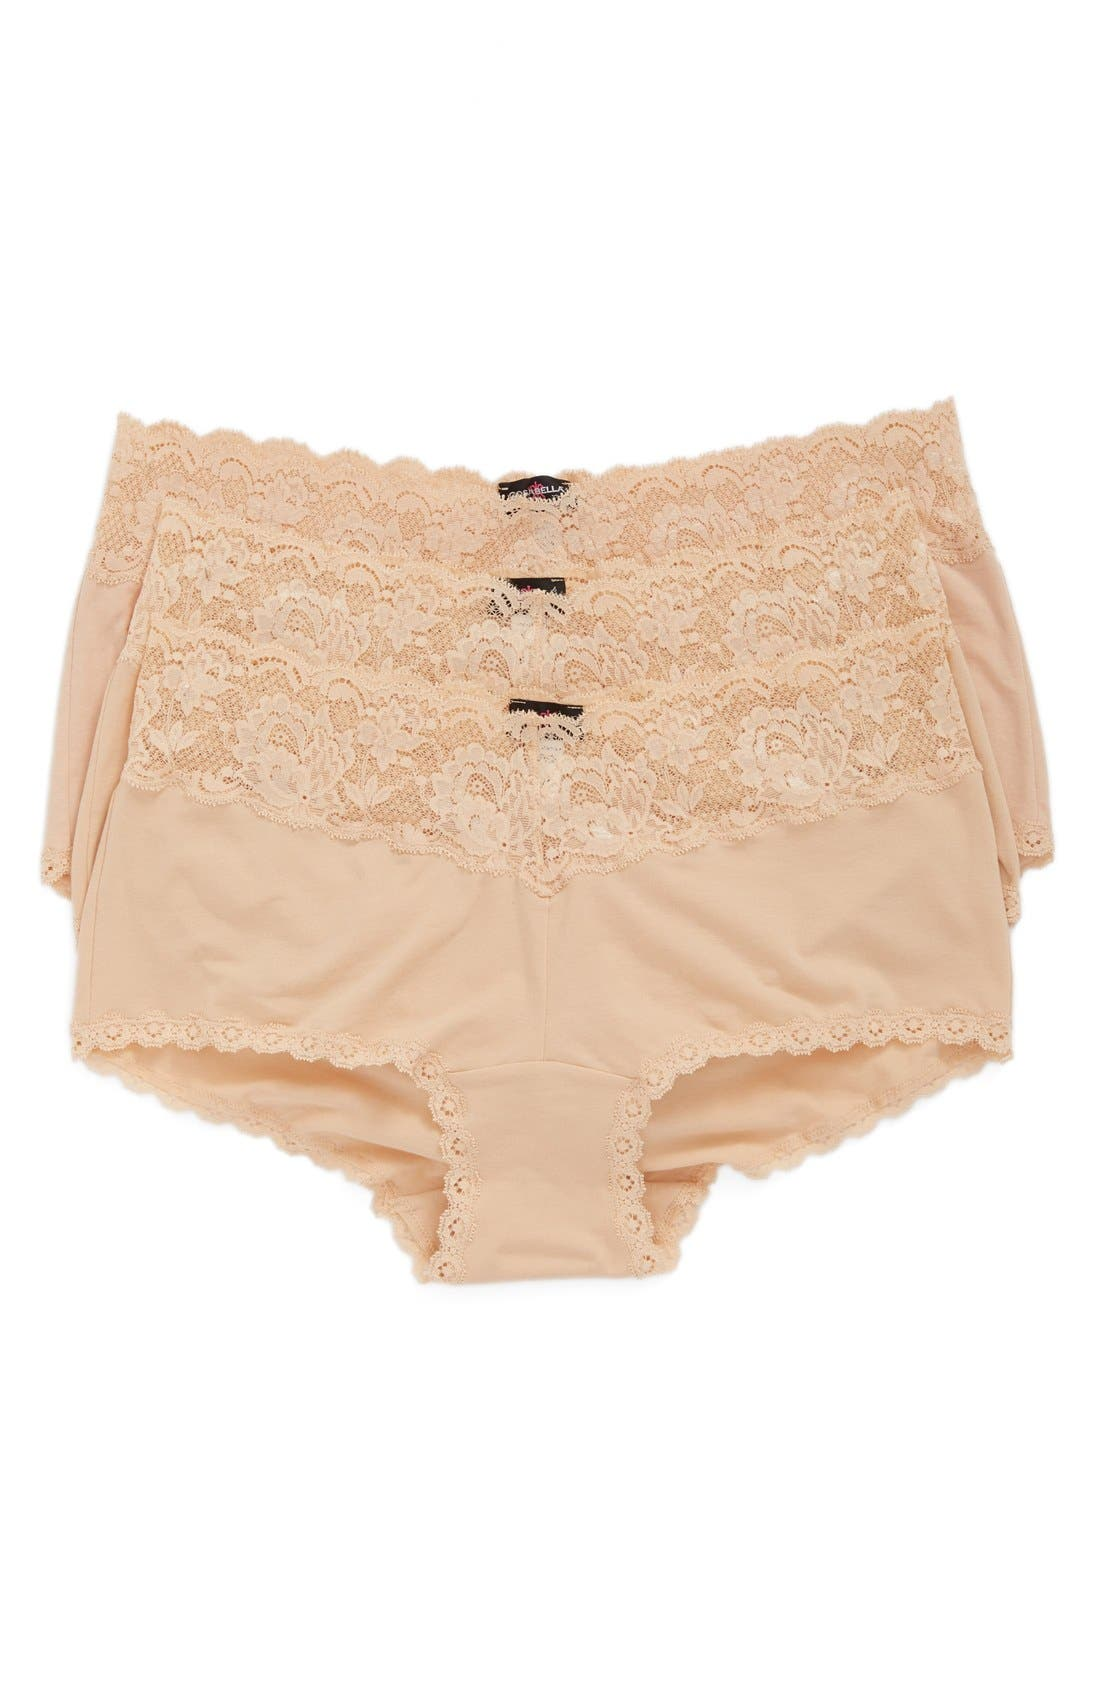 Alternate Image 1 Selected - Cosabella 'Cheekie' Lace Trim Briefs (Plus Size) (3-Pack) (Online Only)